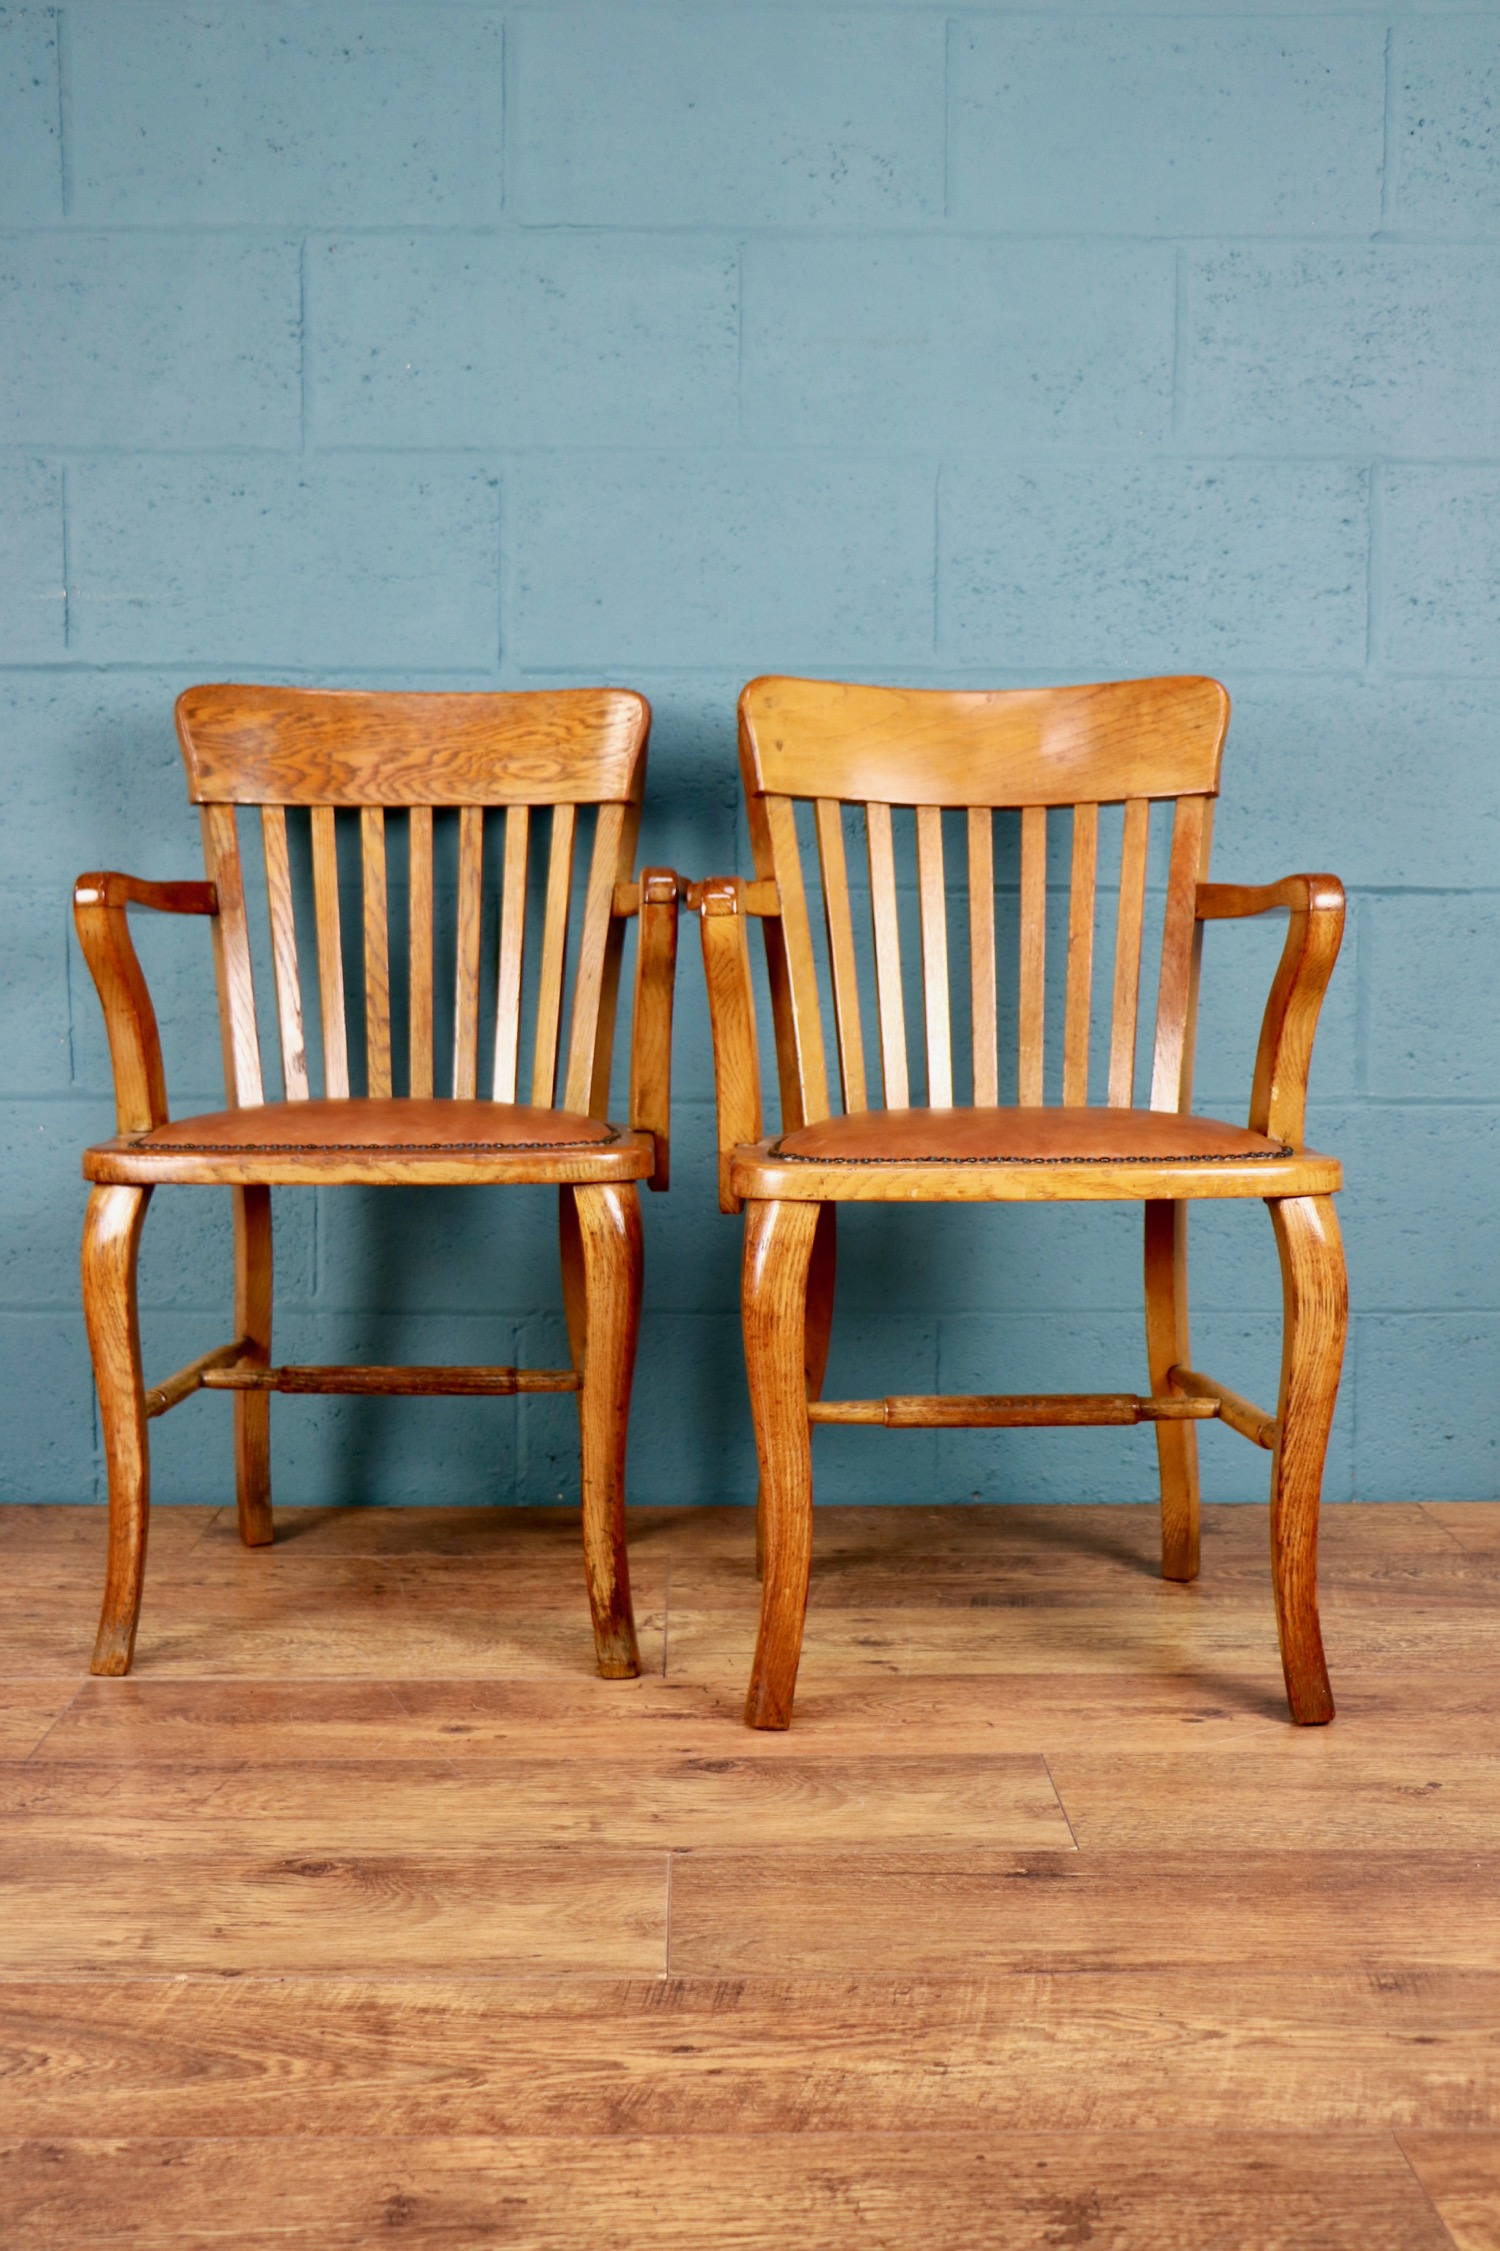 - This is to let you know that the chairs have safely arrived yesterday. They suit perfectly to our antique English partner desk!Jan, Germany